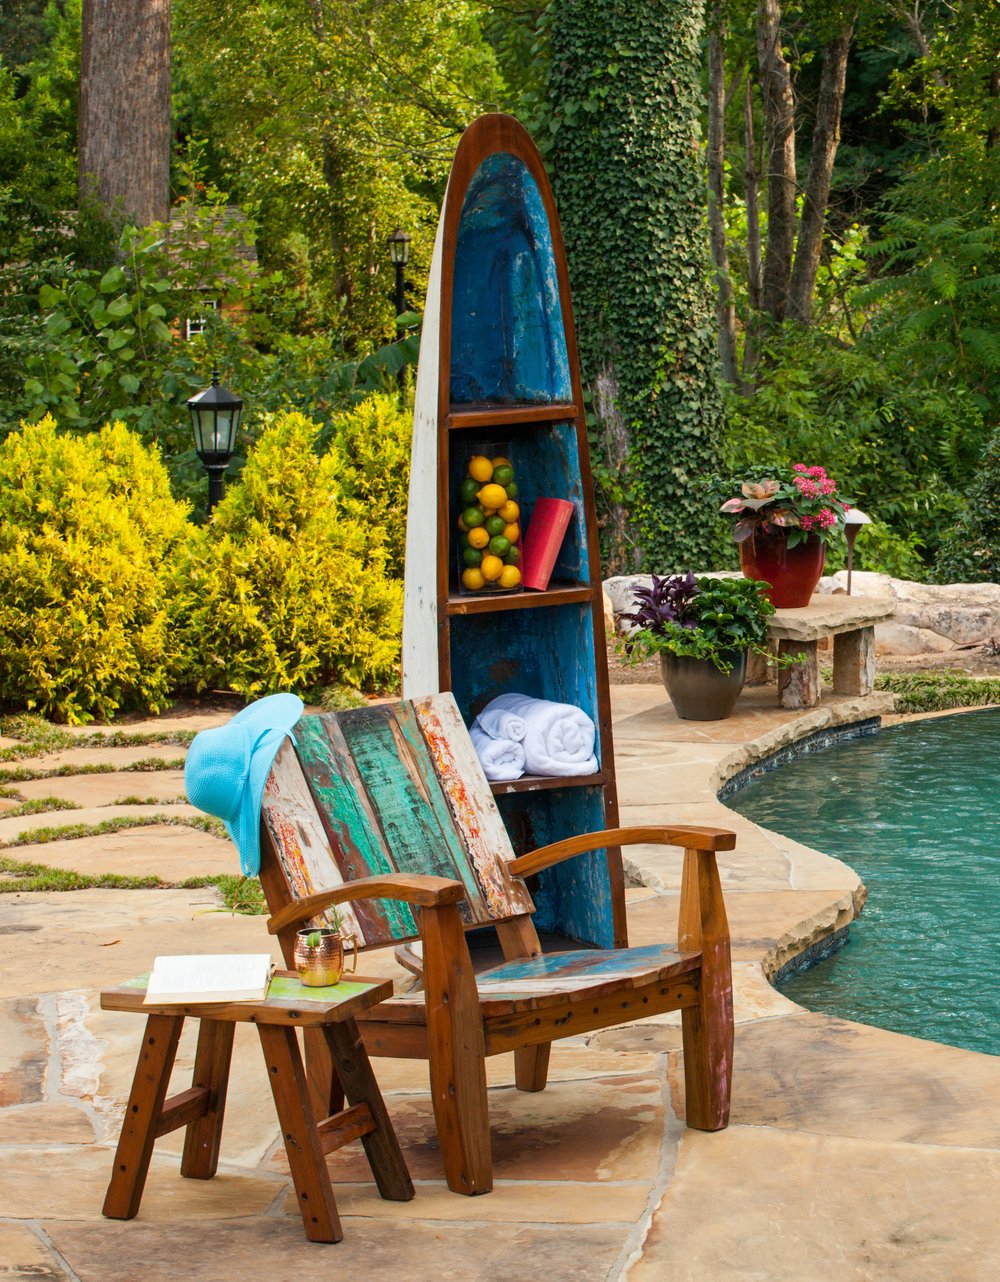 The Max Chair is comfortable and heavy enough not to blow around in bad weather. It doesn't have a problem with wet bathing suits either. The Boat Rack has plenty of storage room for towels and sunscreen or anything else you need to relax by the pool.